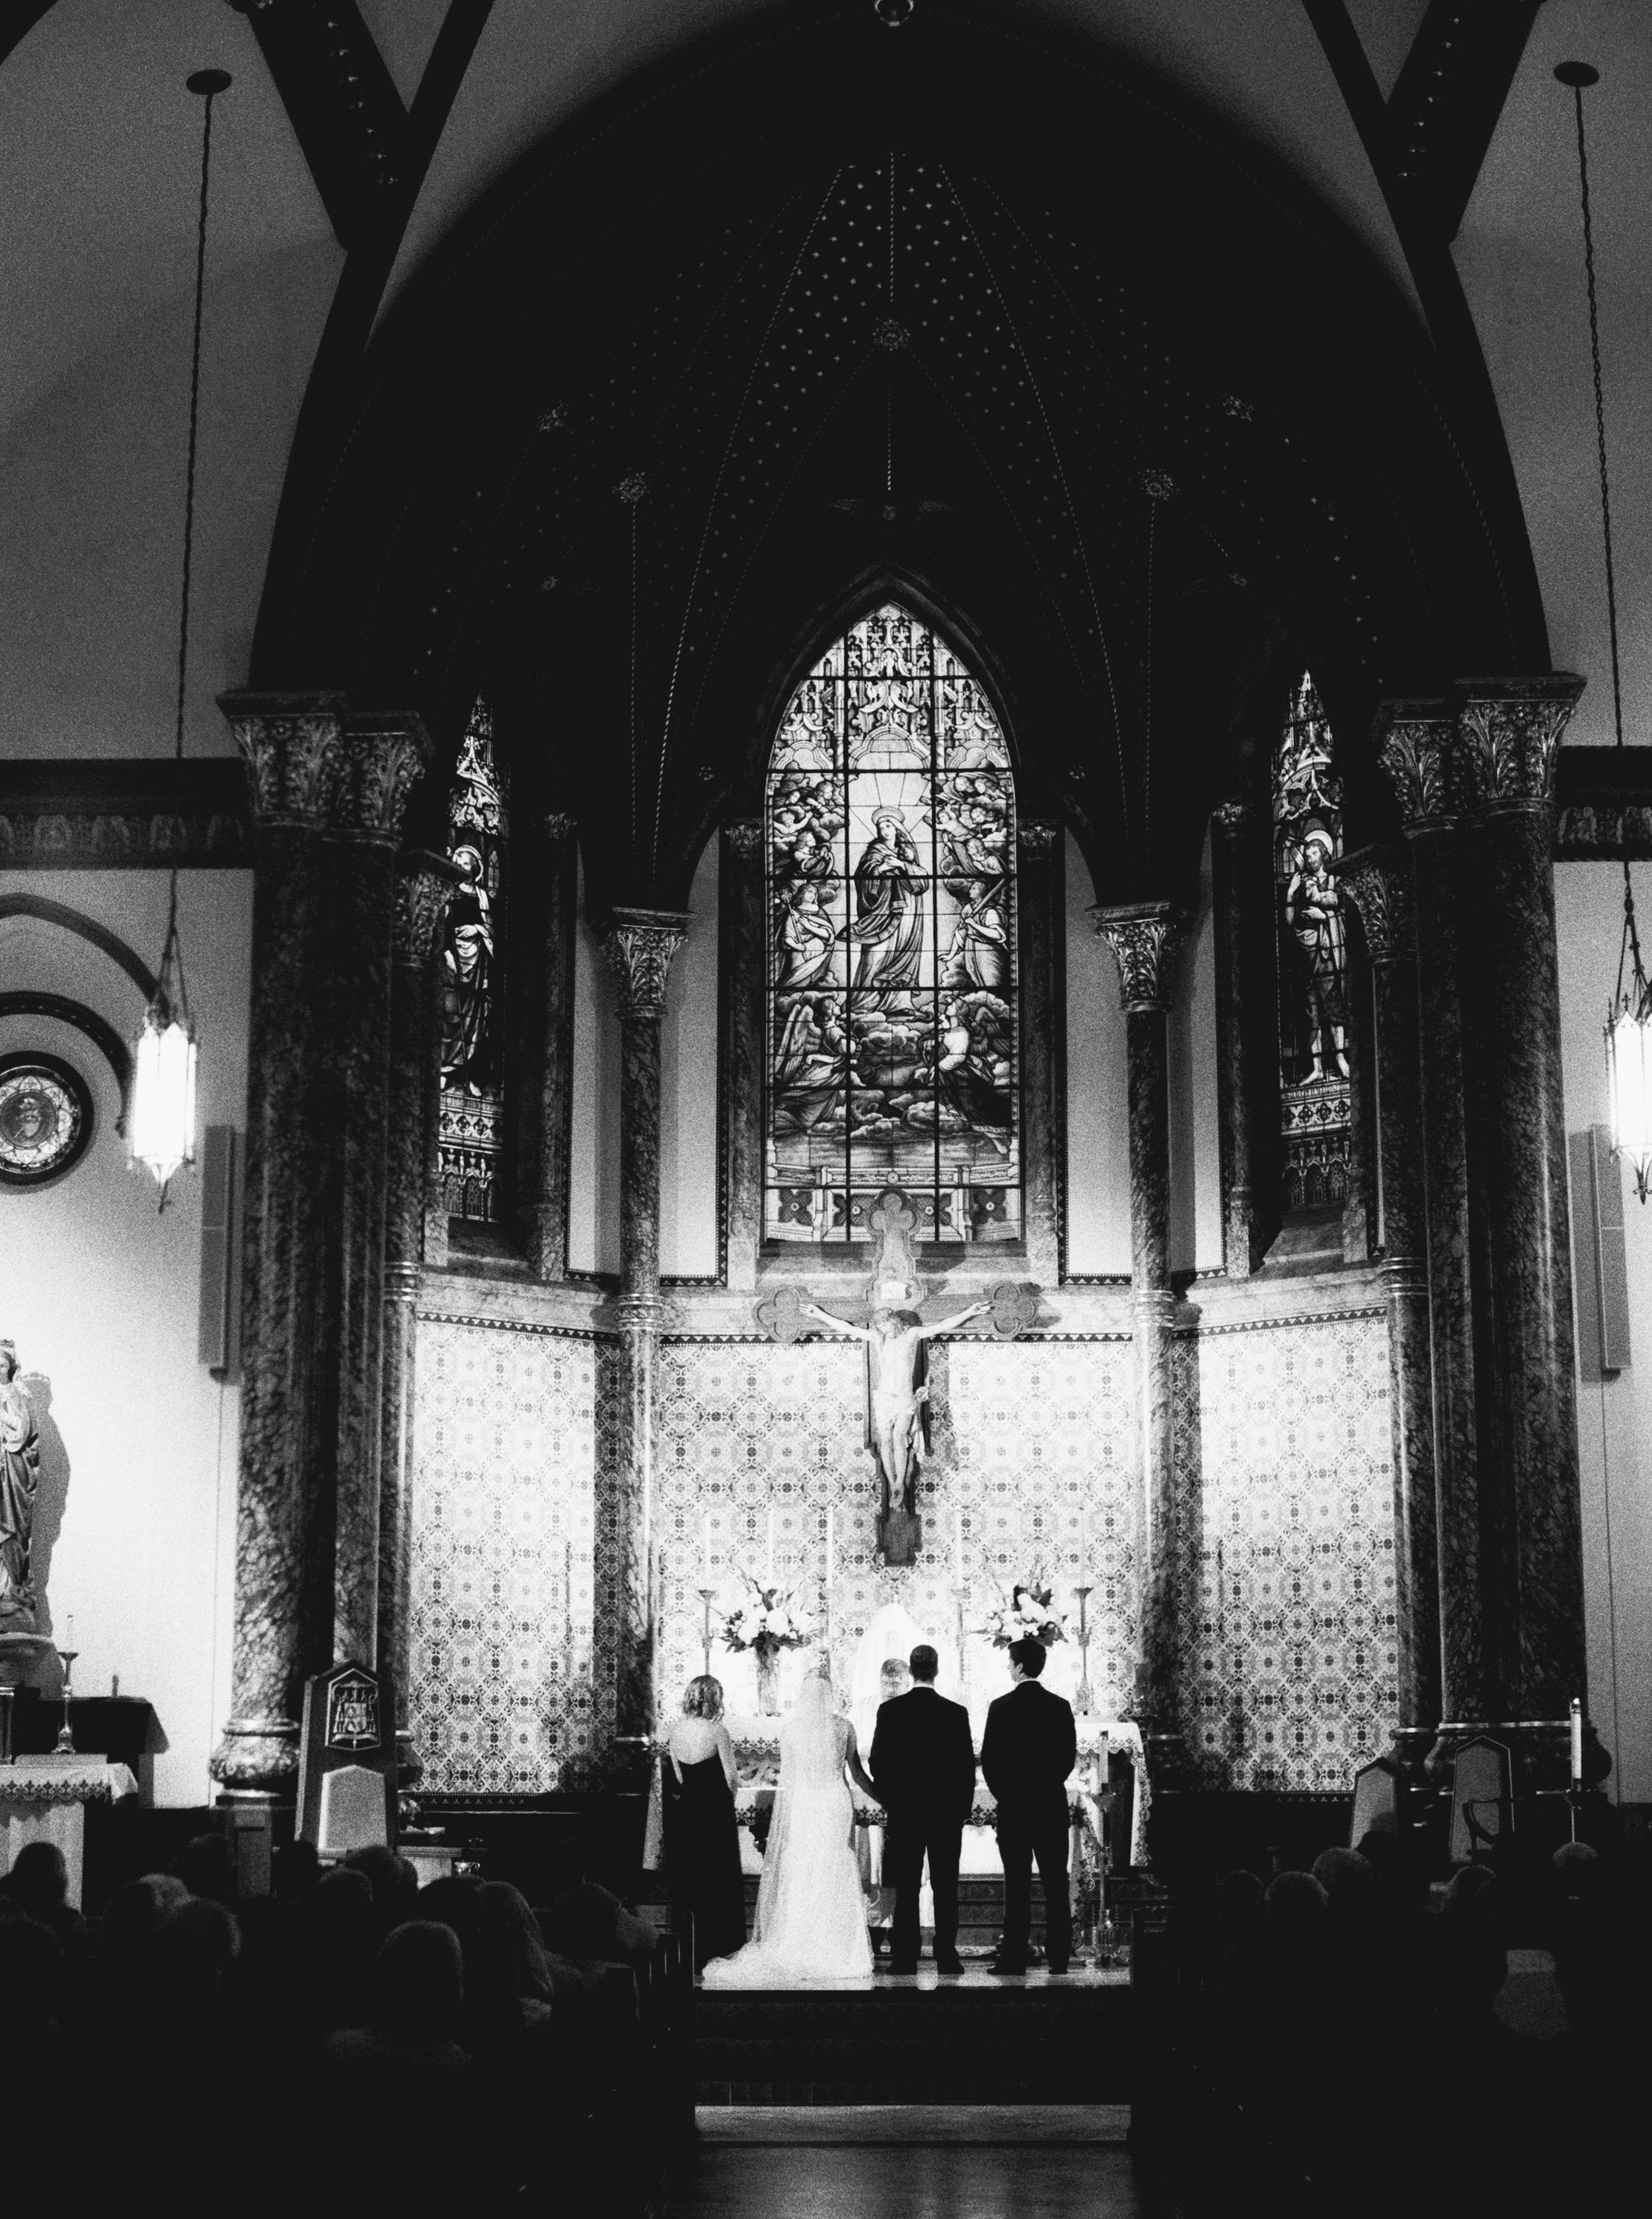 michelle_boyd_pv_takeover_michelles_vision_contax645_ zeiss80mm_ilford3200_st_marys_cathedral_austin_texas_lindsey_brunk_maggie_sottero_bhldn_sweet_magnolia_floral_clayton_string_adarem_photovisionprints.jpg